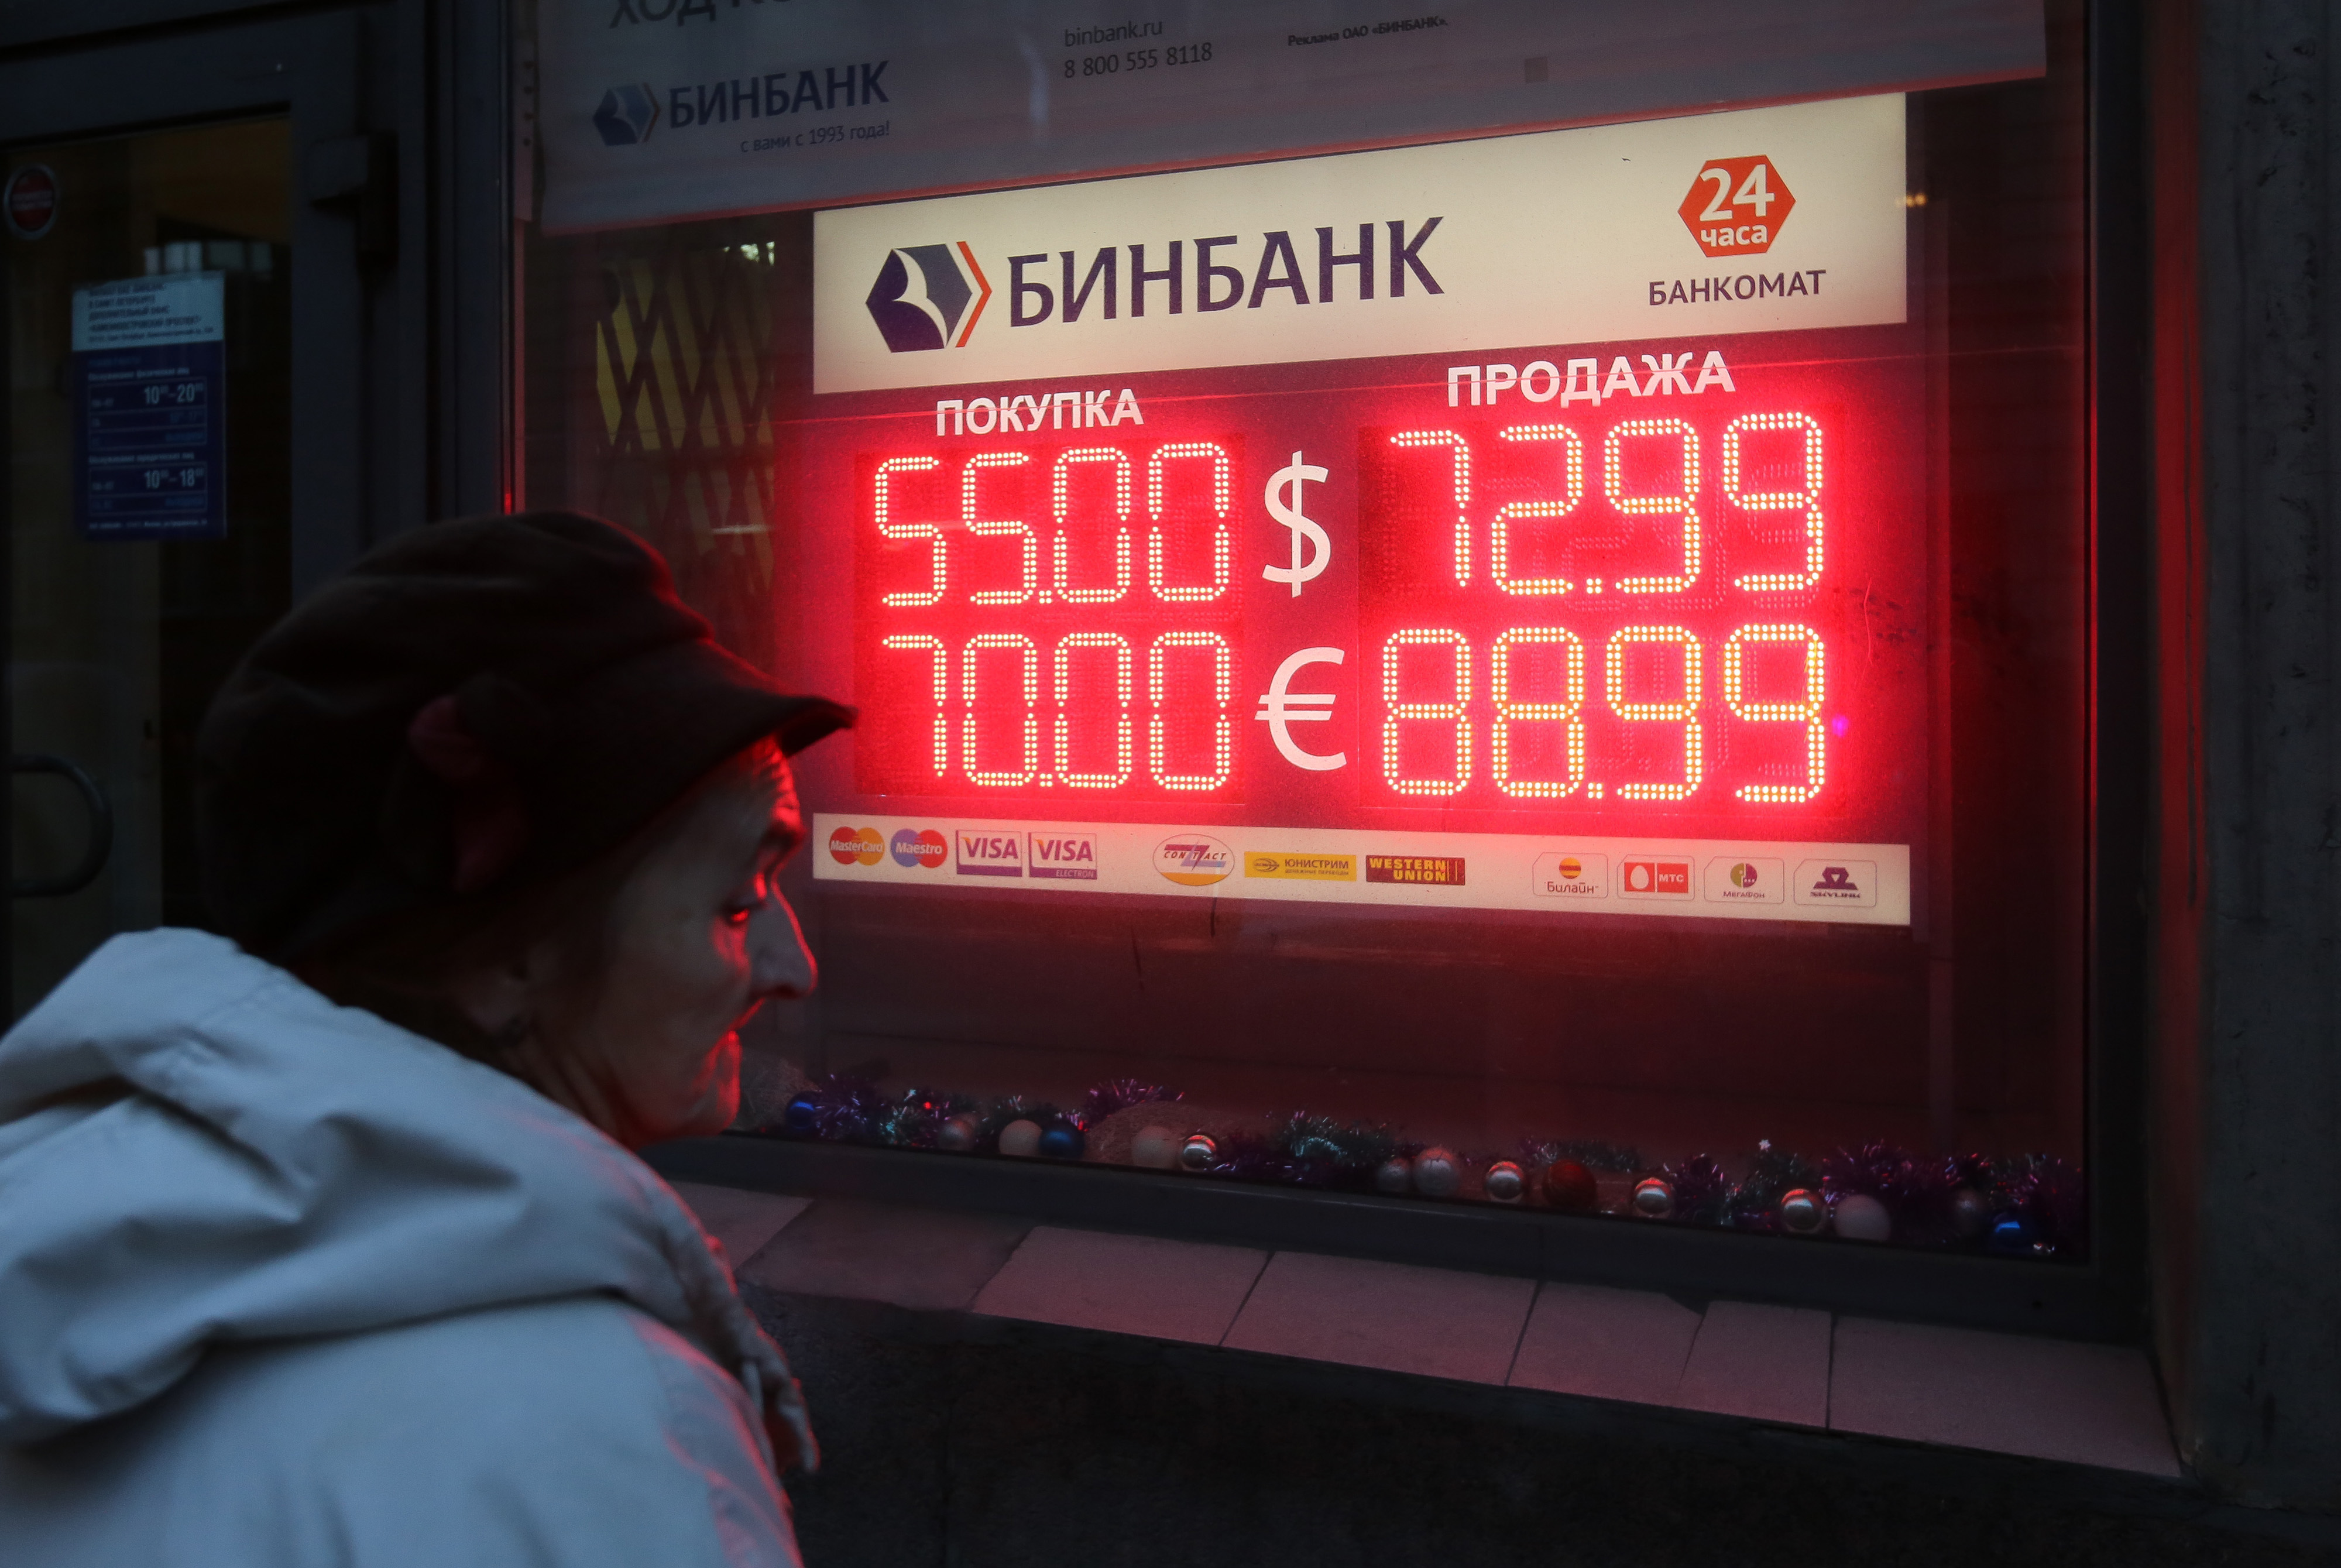 General Retail As Putin Seeks To Reassure Russians On Ruble